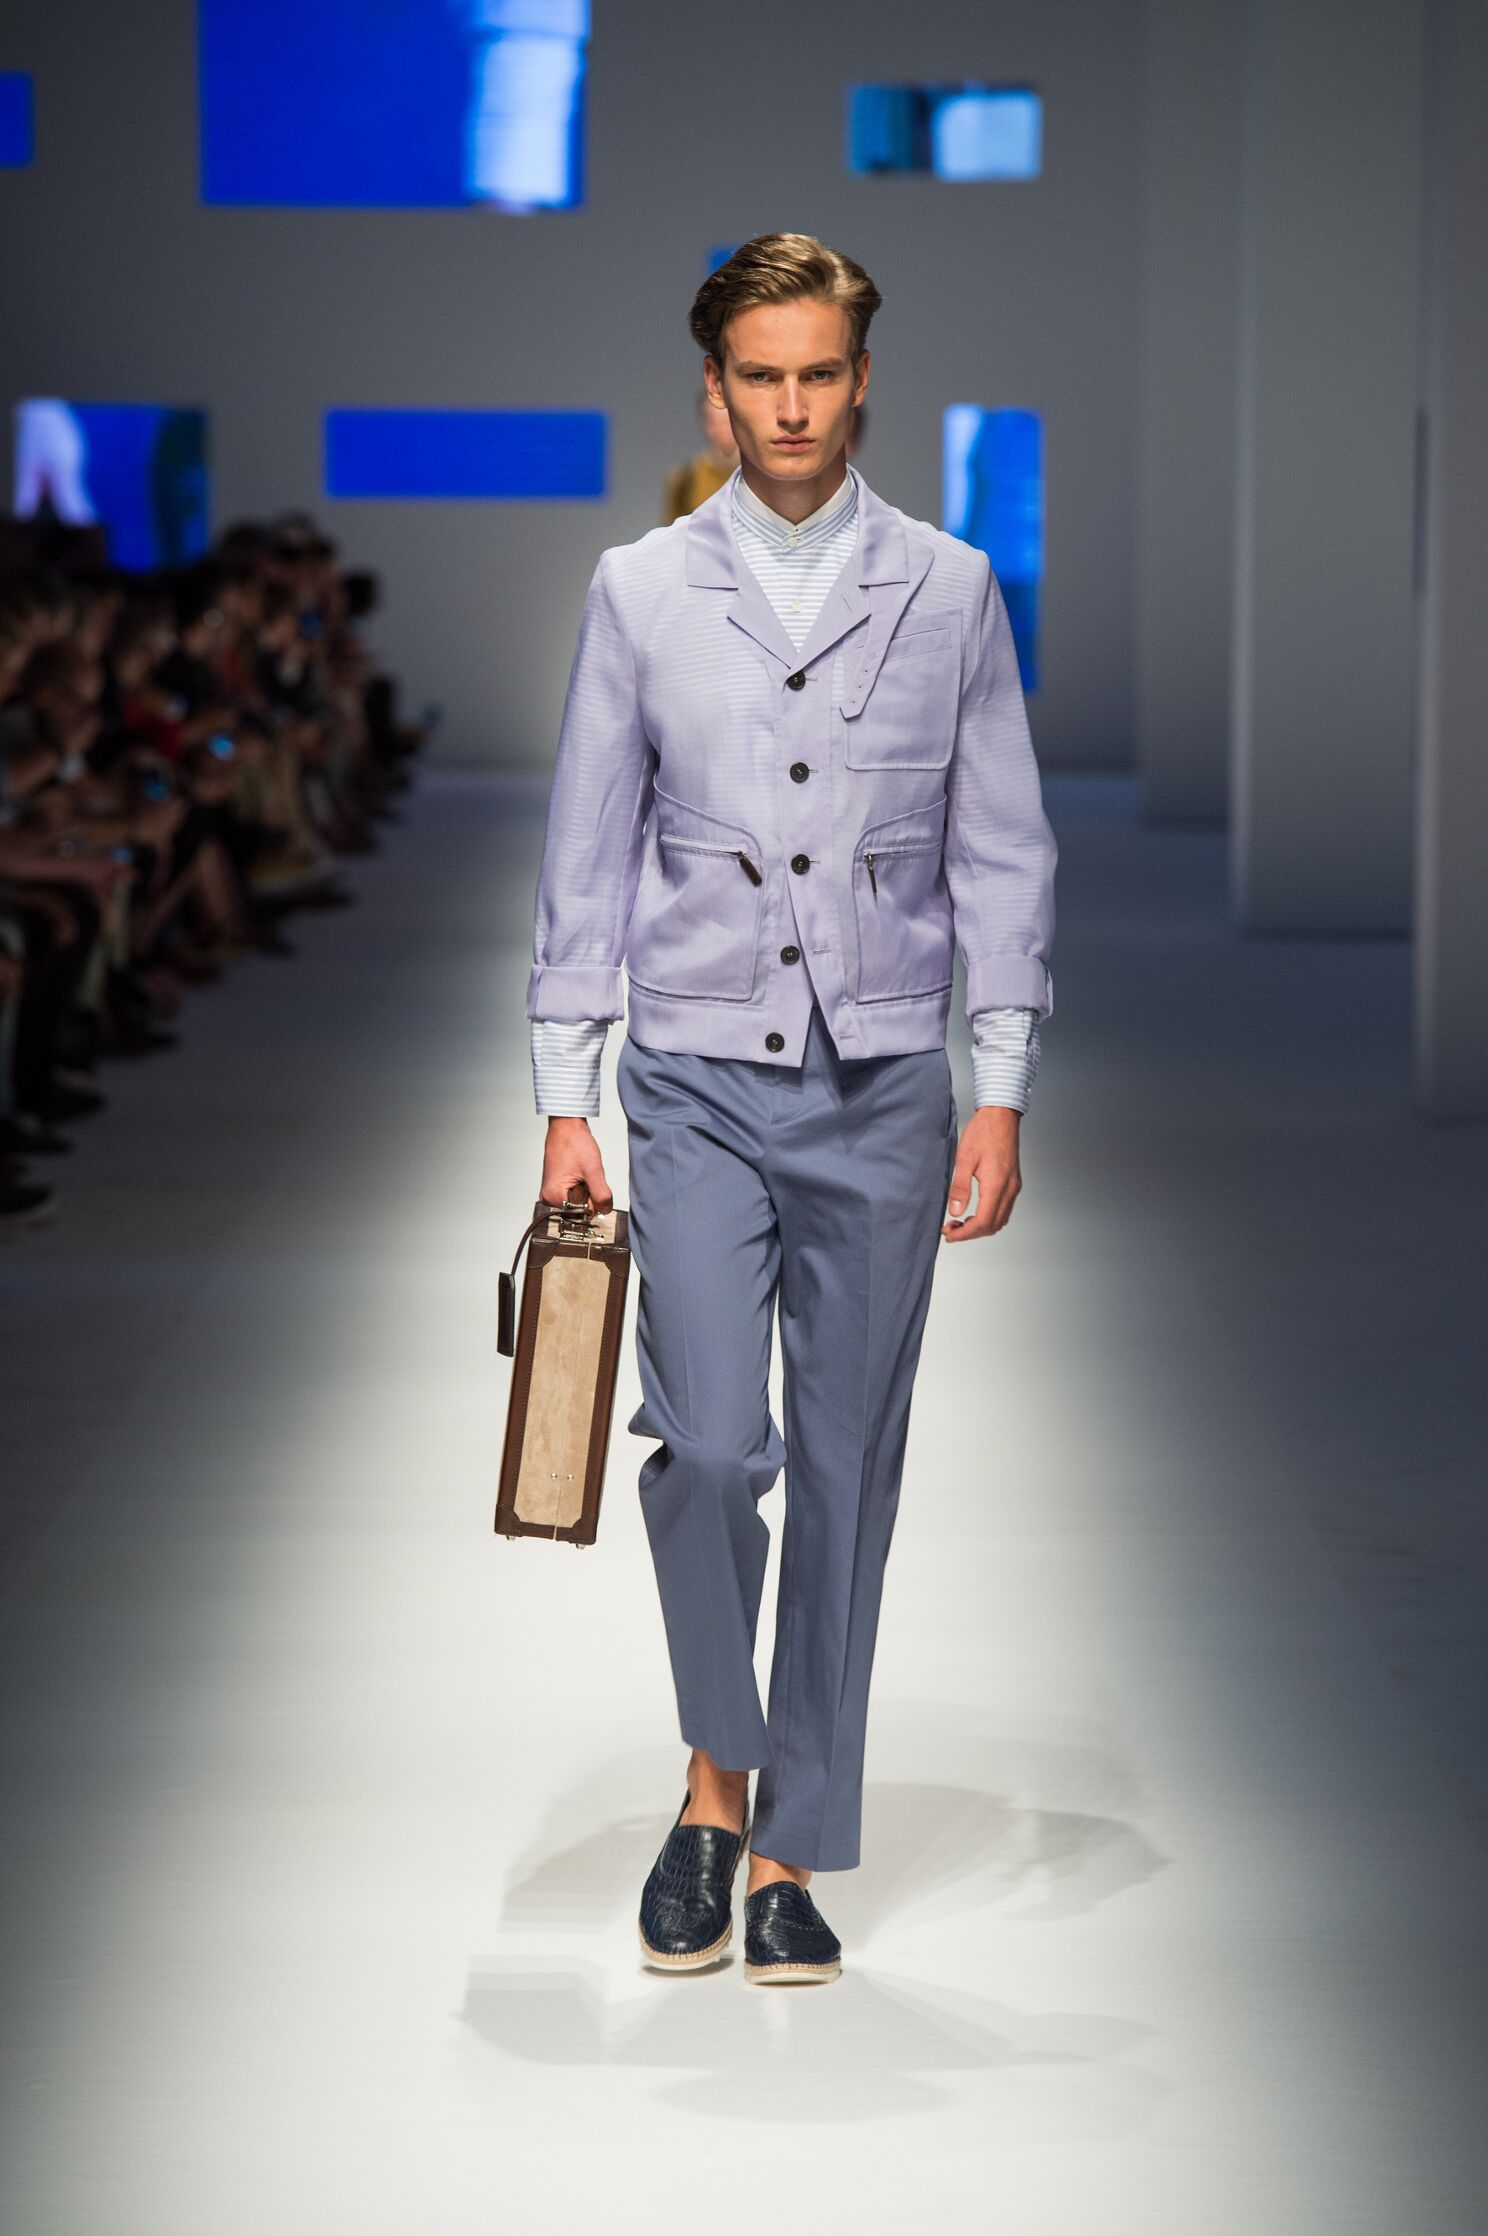 2016 Fashion Man Model Canali Collection Catwalk